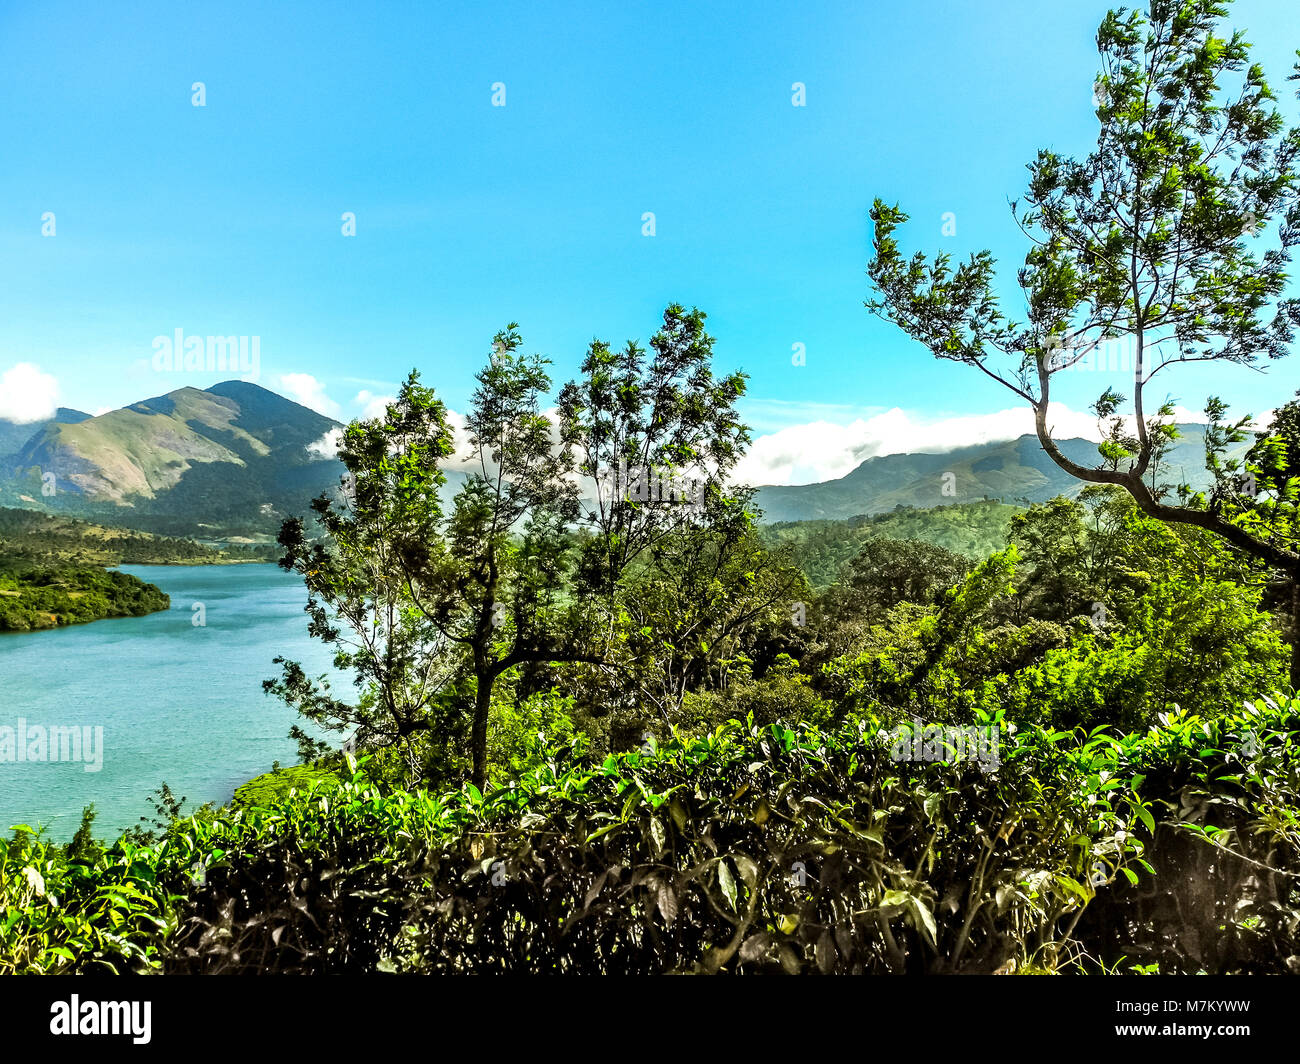 THEKKADI, KERALA, INDIA - DEC. 15 2011: Beautiful landscape with colorful wild forest and Periyar River, Thekkadi, - Stock Image